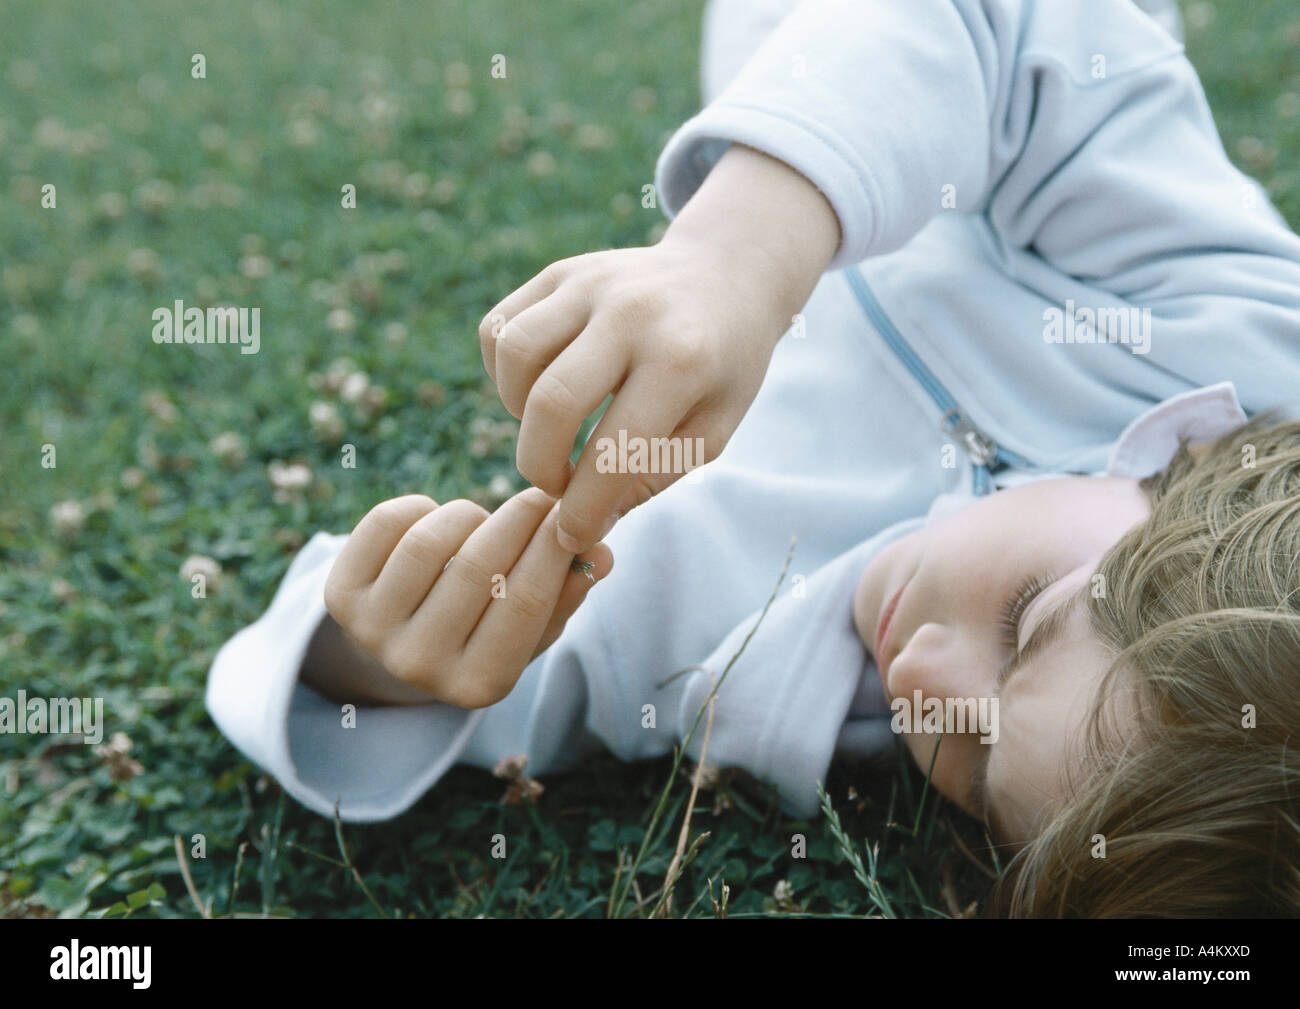 Boy lying on grass holding fingers together in front of face - Stock Image